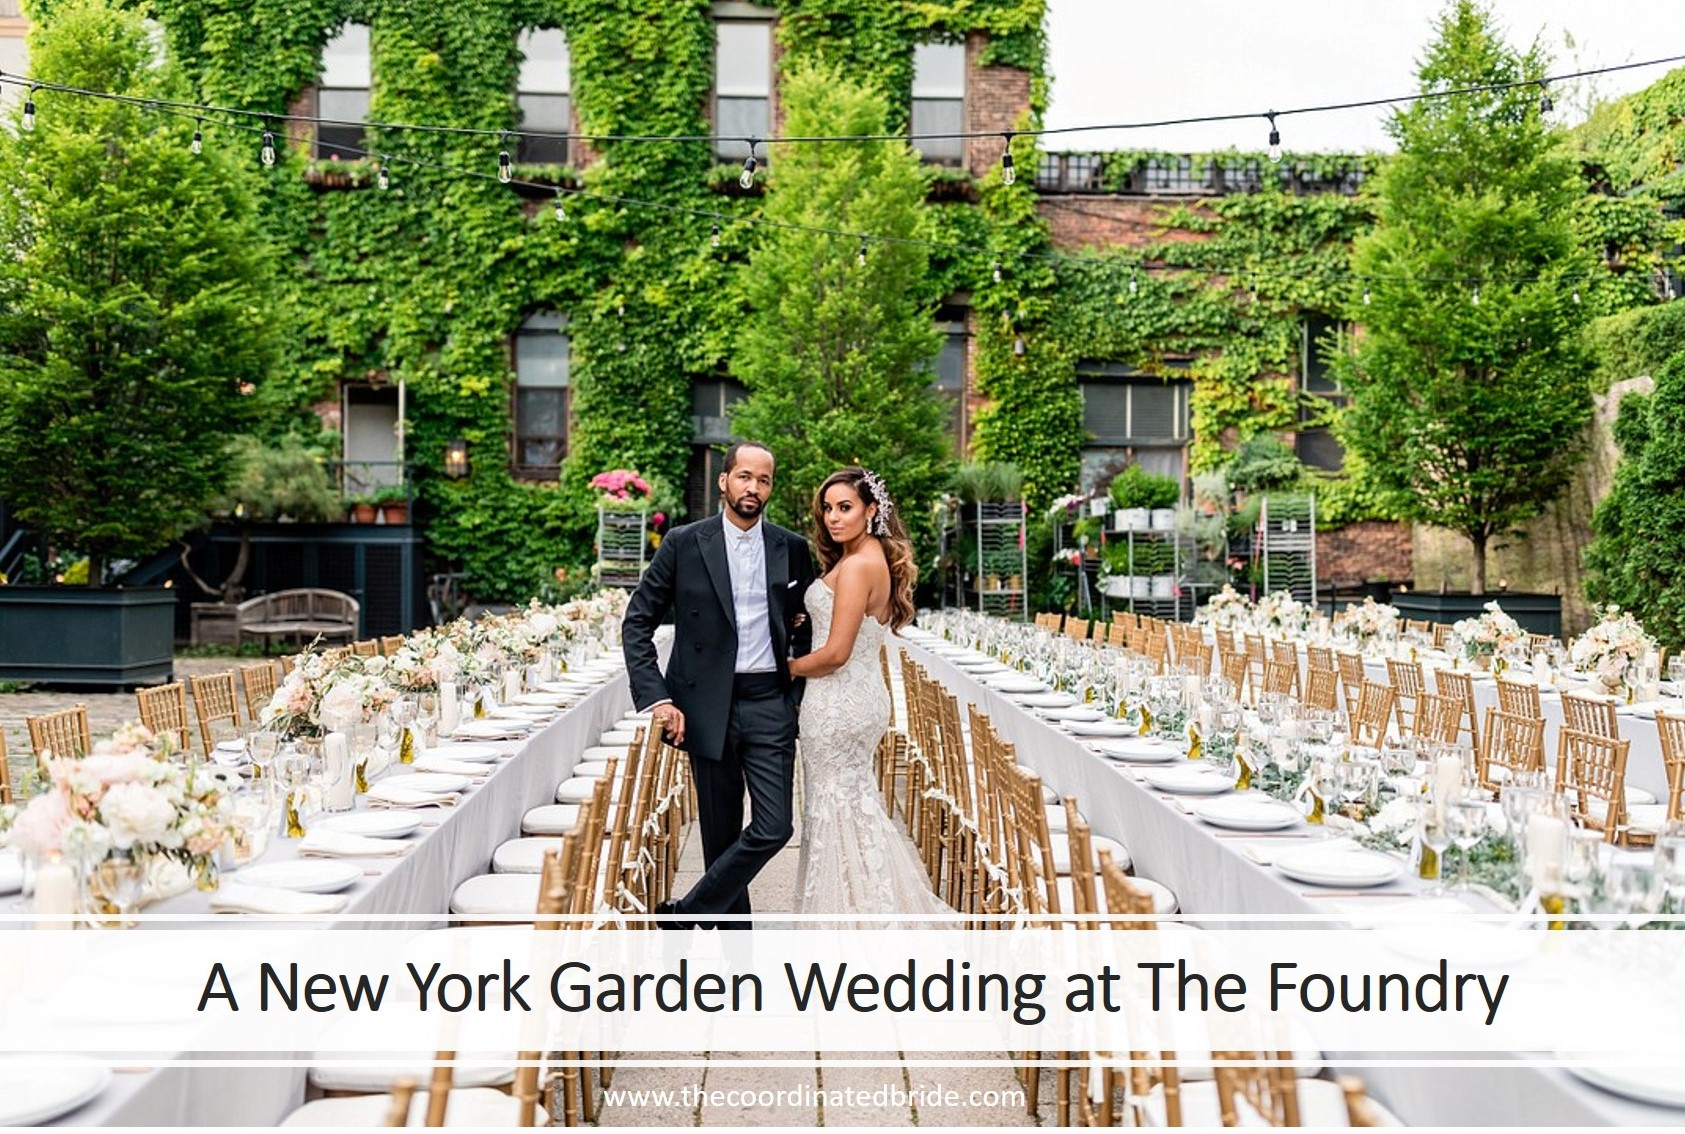 A New York Garden Wedding at The Foundry | The Coordinated Bride